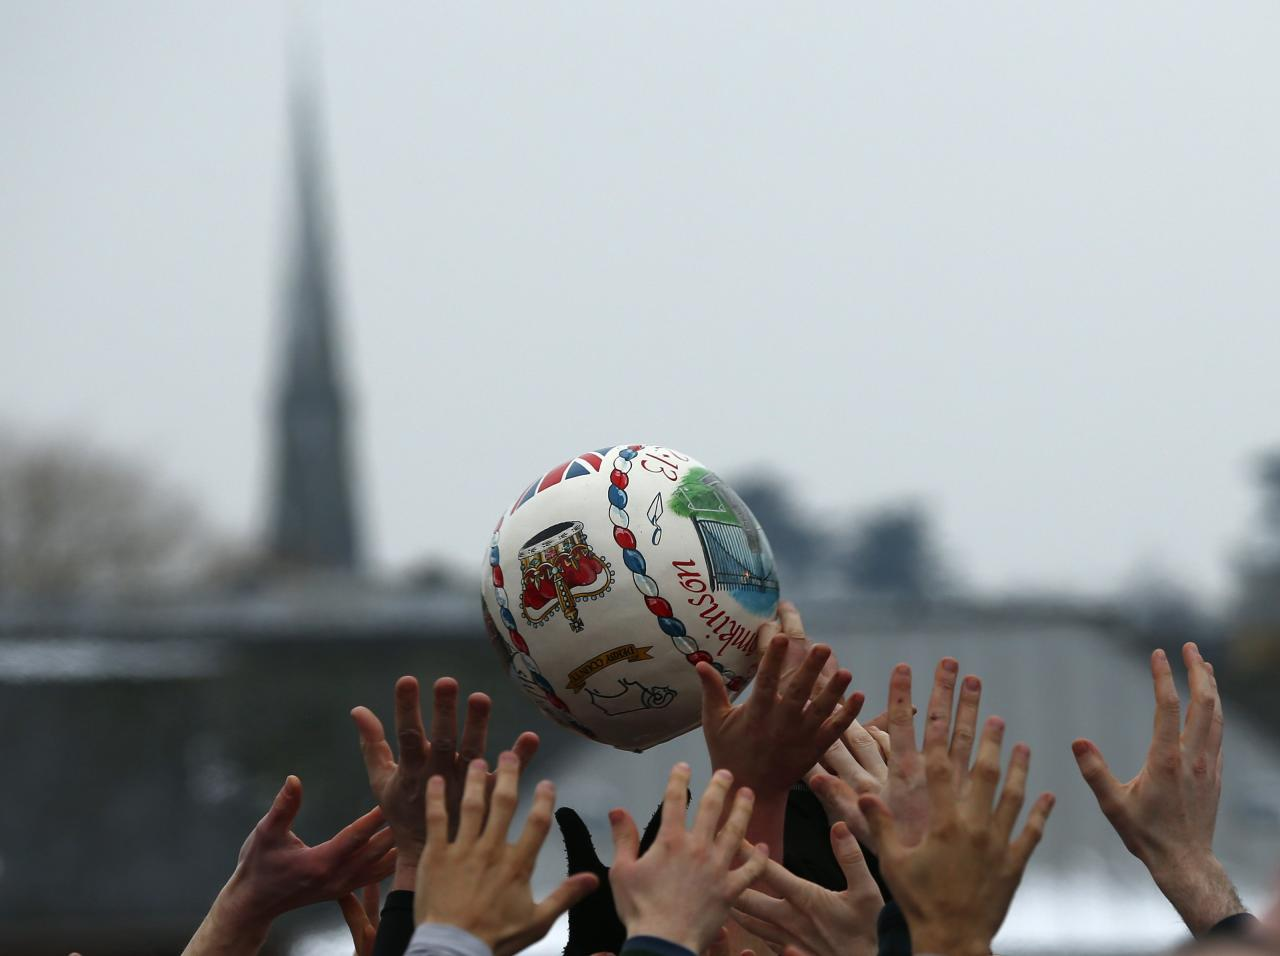 <p>The ball is momentarily suspended in the air as a crowd of hands reach up to grab it (Reuters)</p>